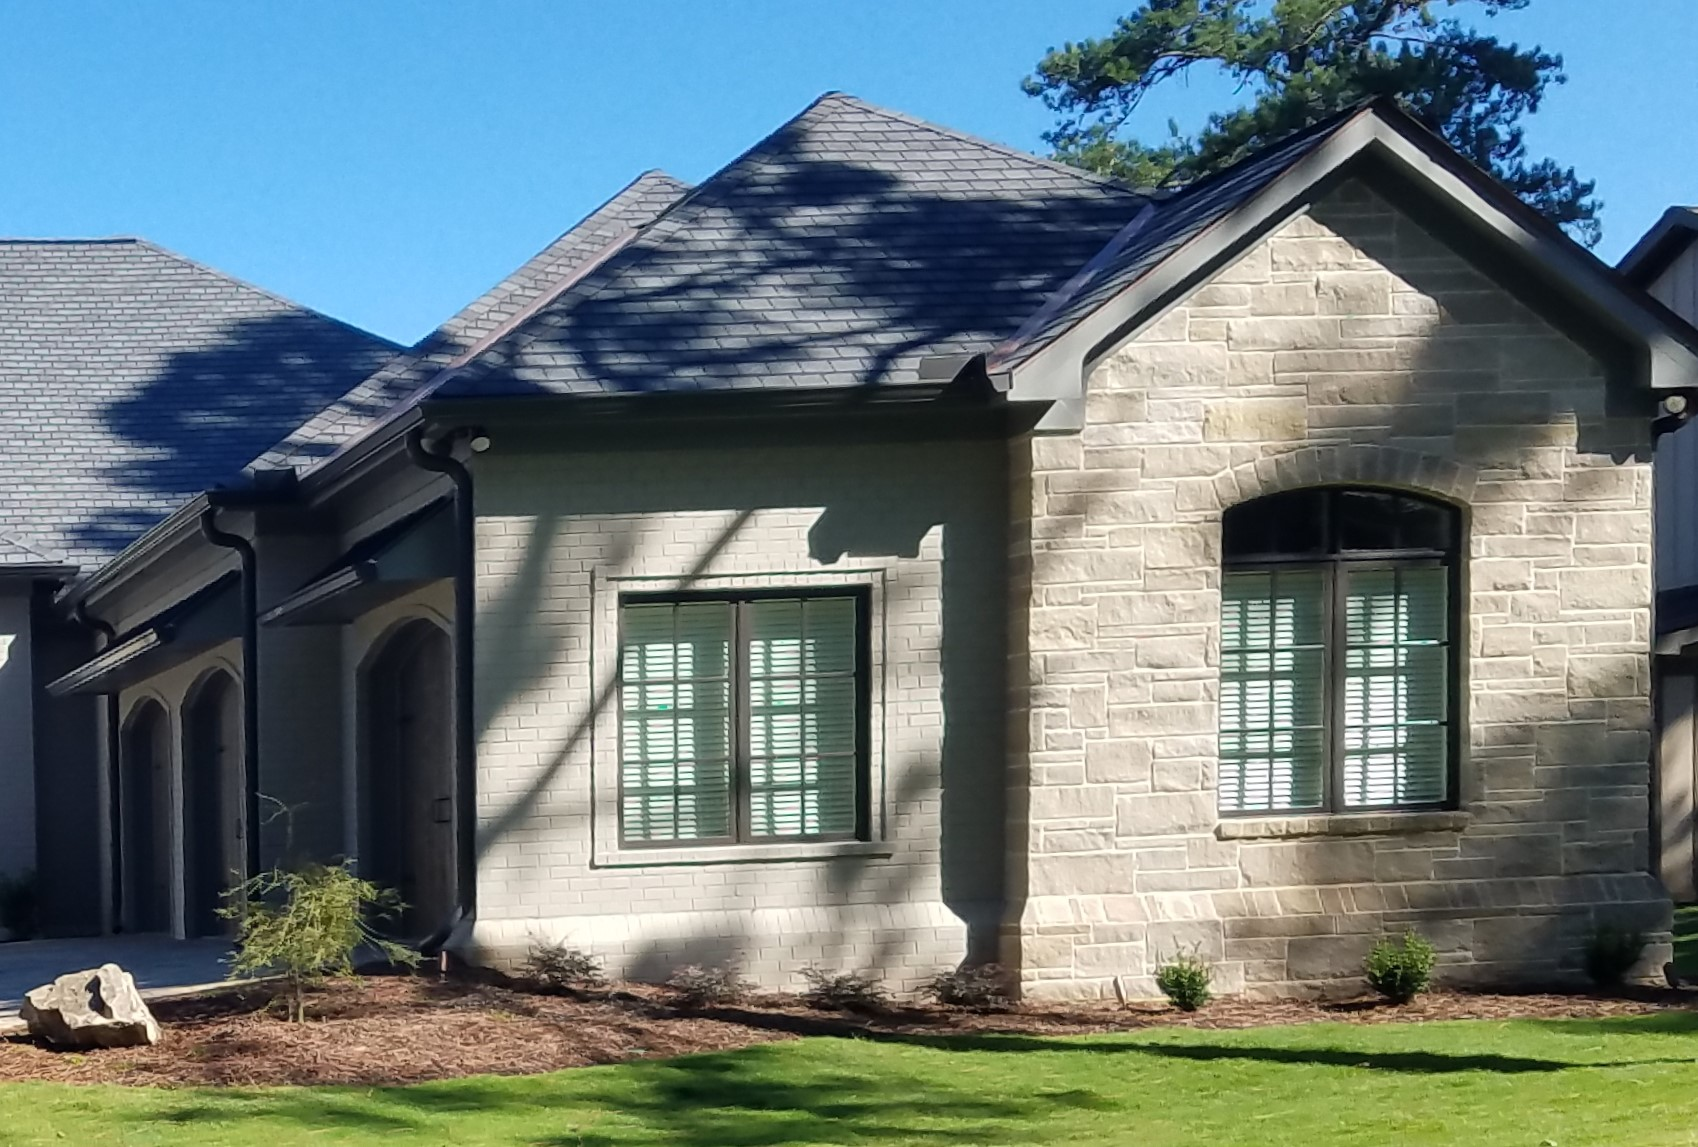 LUXE Homes Pro Front Facade 1B-Stone _ Cornice Details.jpg